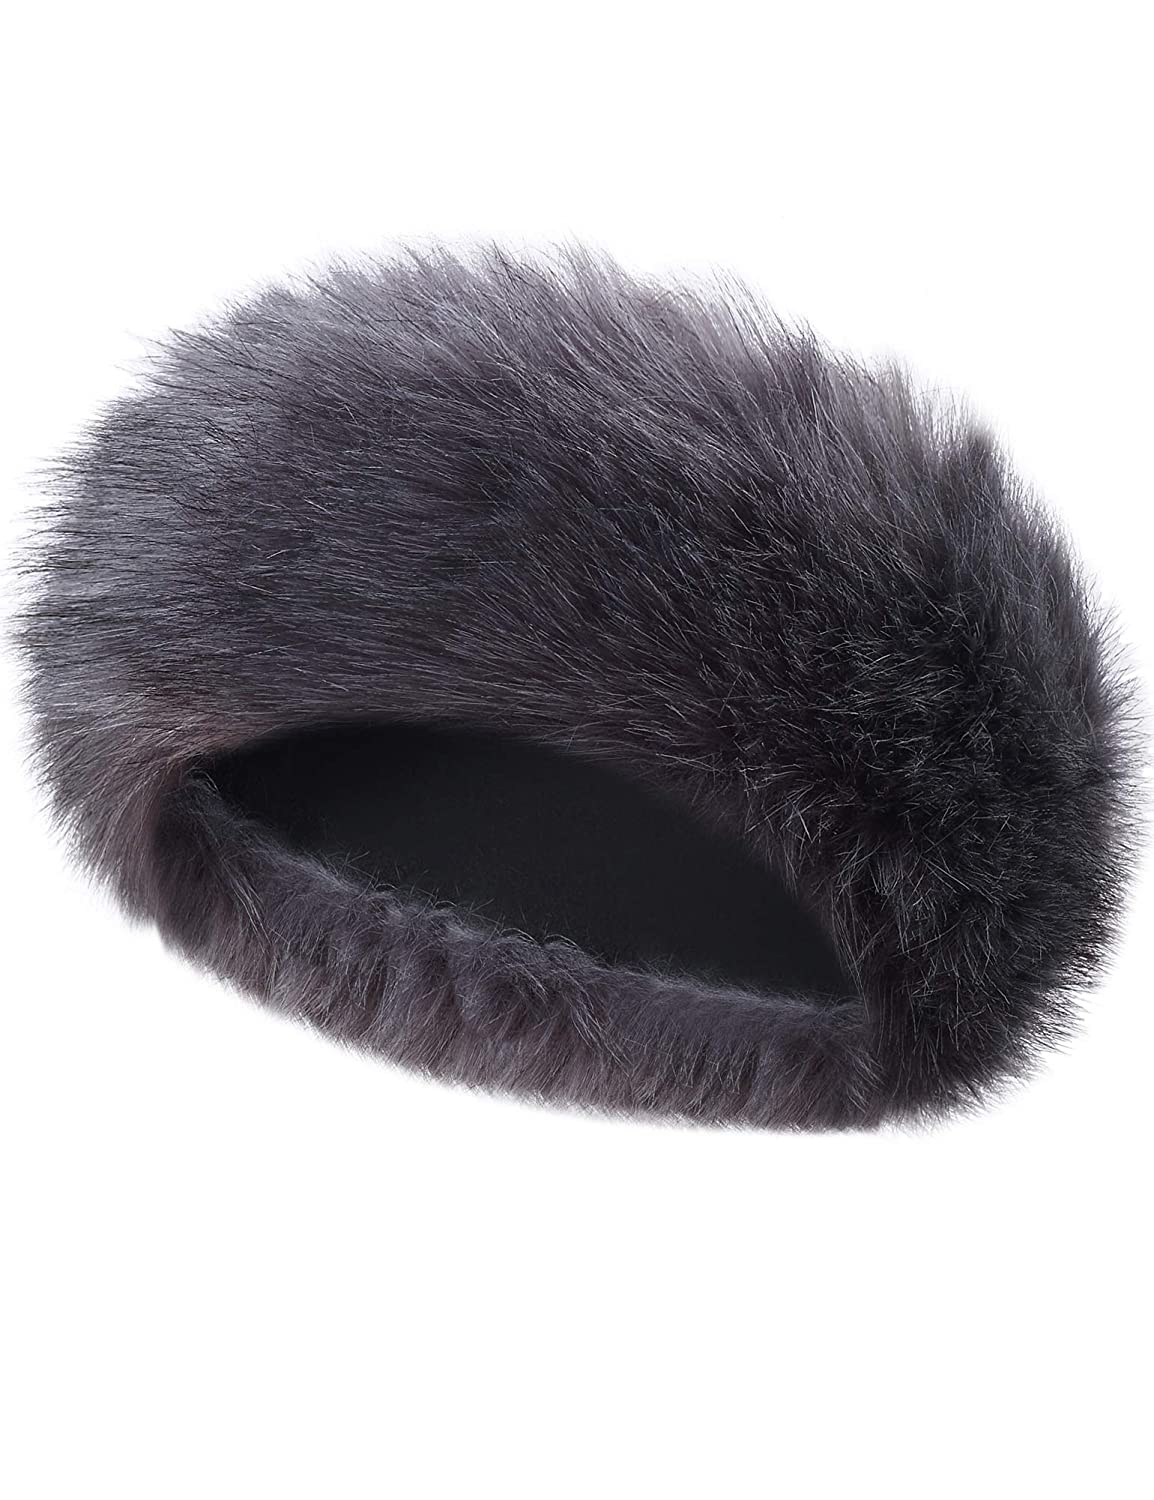 Caracilia Faux Fur Headband Women s Winter Earwarmer Earmuff Hat Ski at  Amazon Women s Clothing store  3eba49f57057